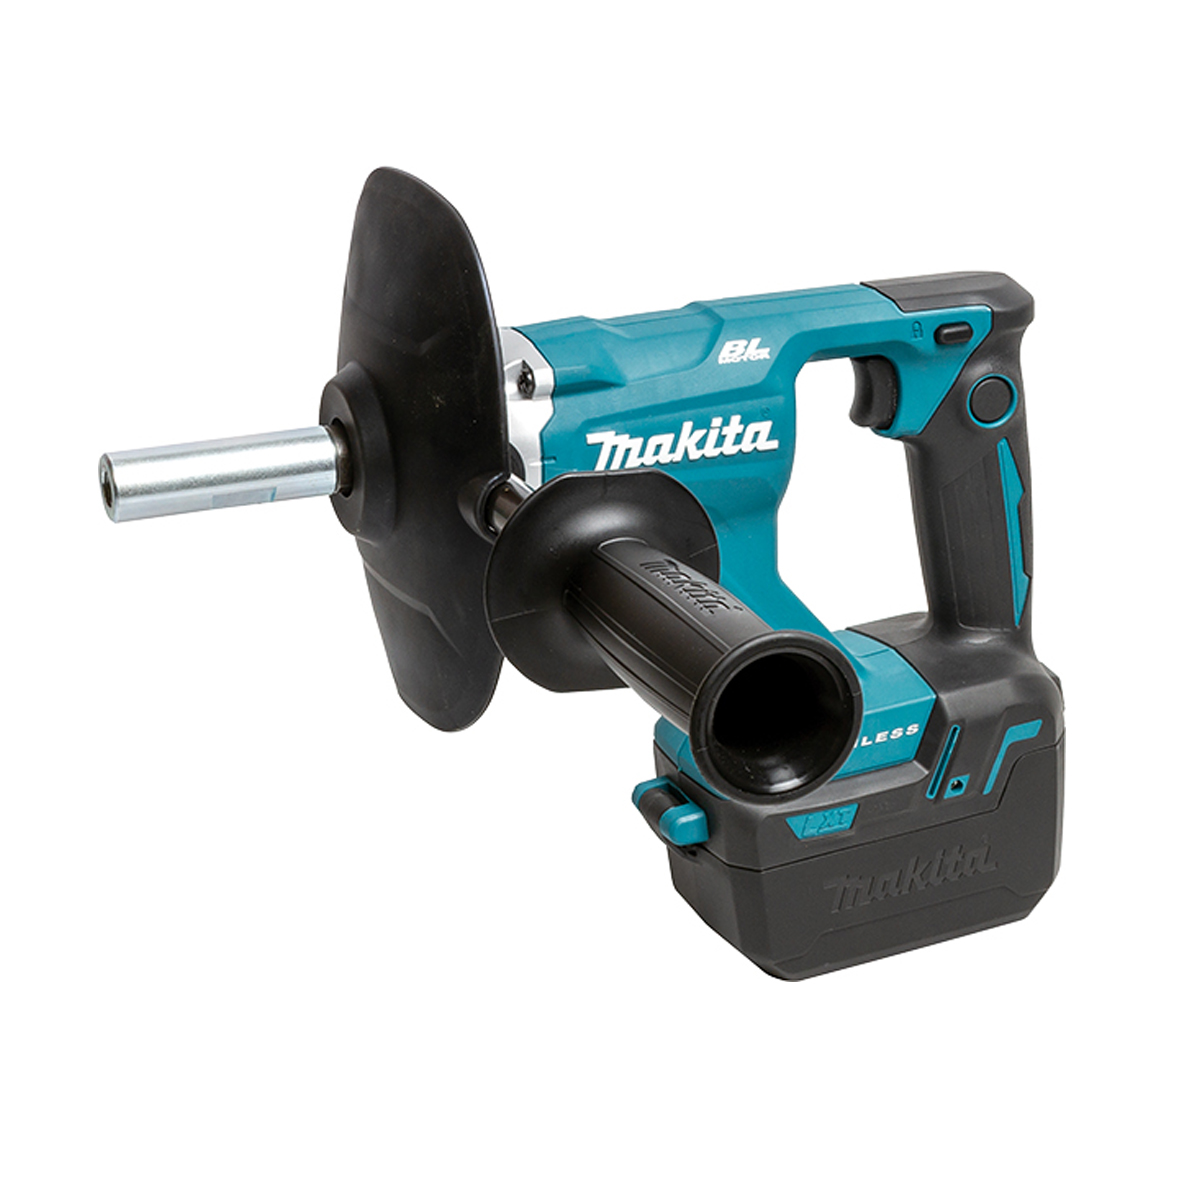 MAKITA 18V BRUSHLESS PADDLE MIXER M14 THREAD - DUT130 - BODY ONLY